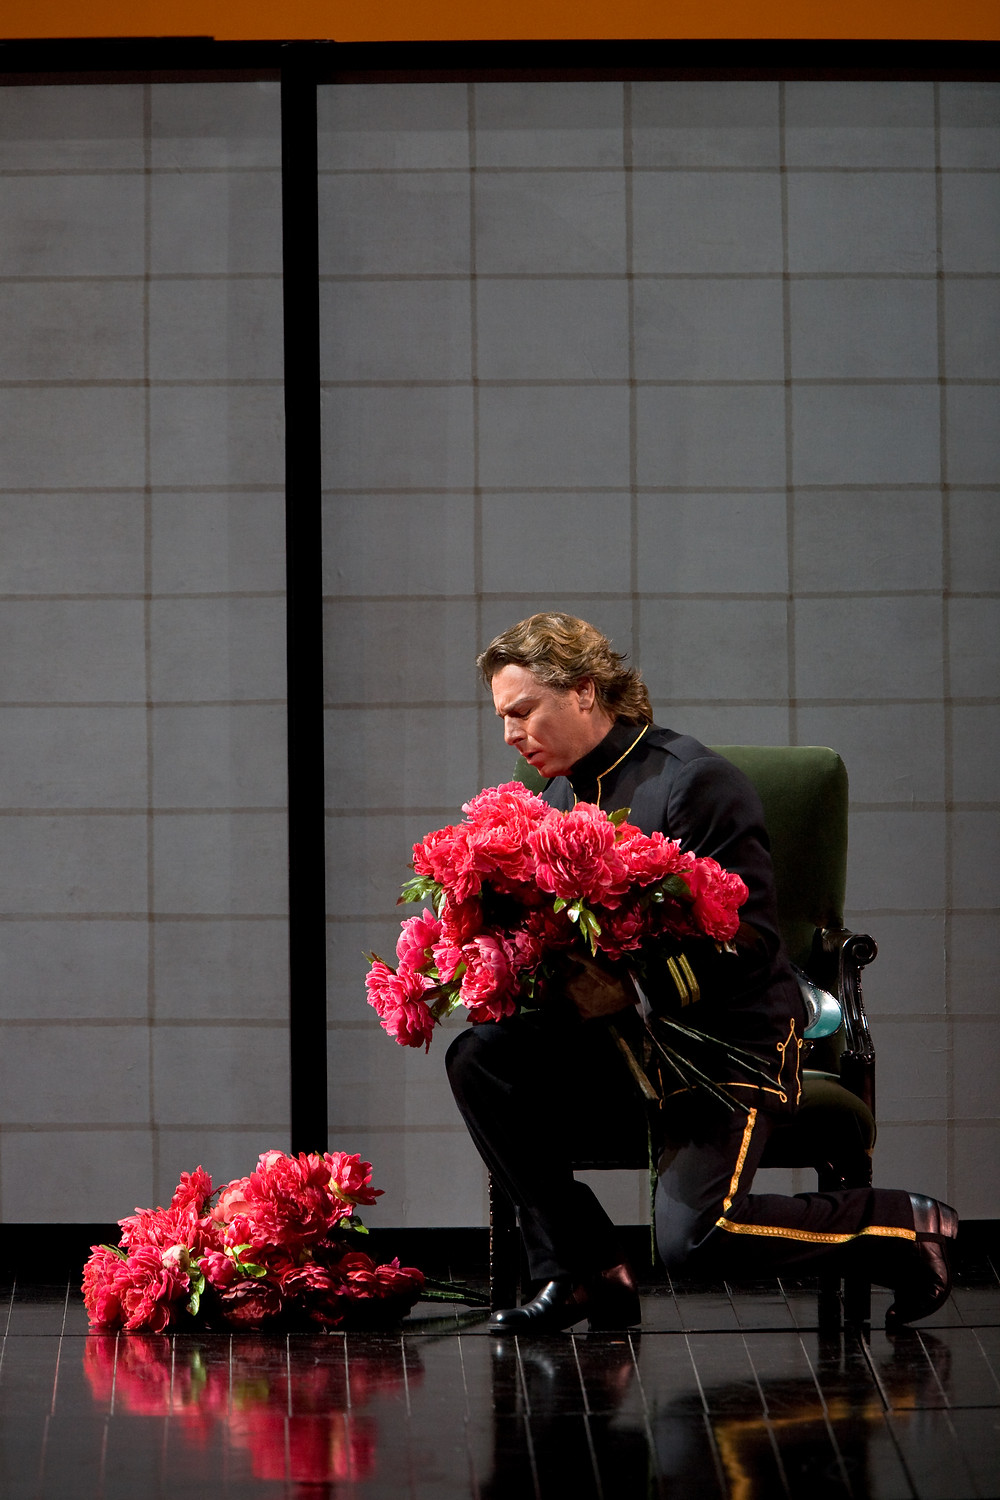 Madam Butterly Metropolitan Opera - The Culture News